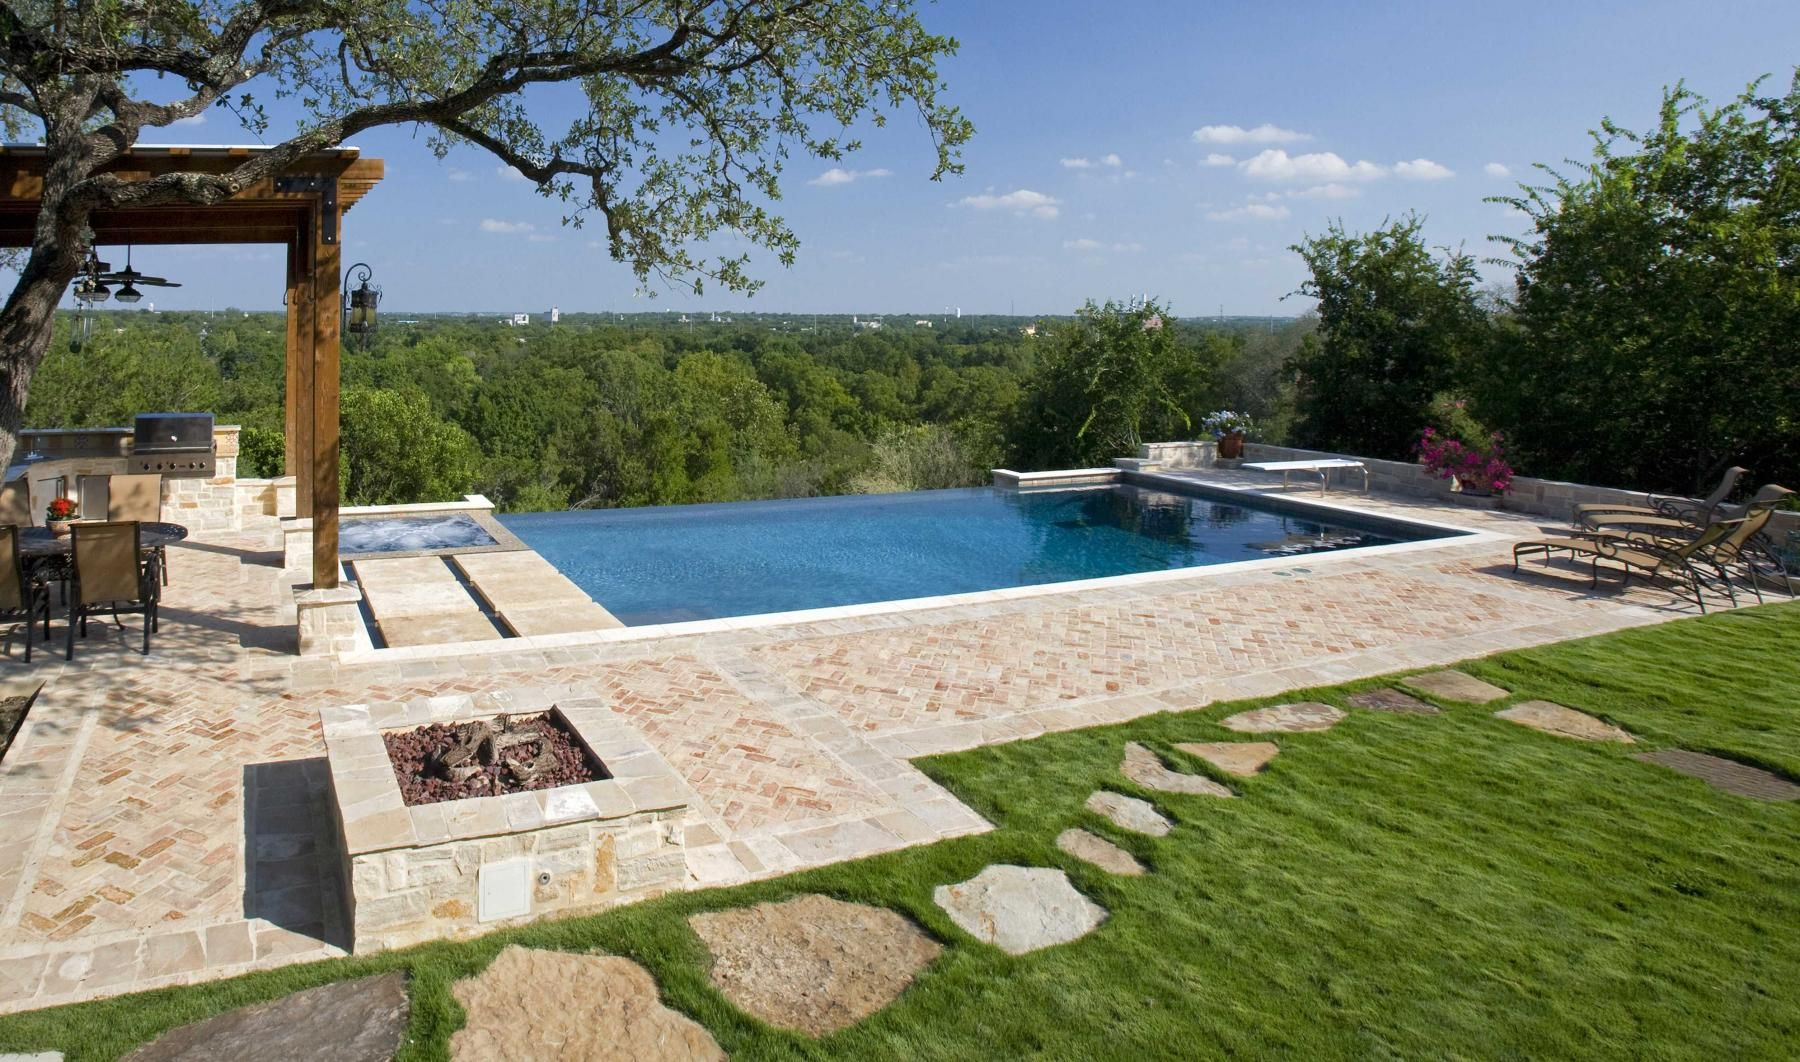 Hill country pools google search pool pinterest for Hill country design